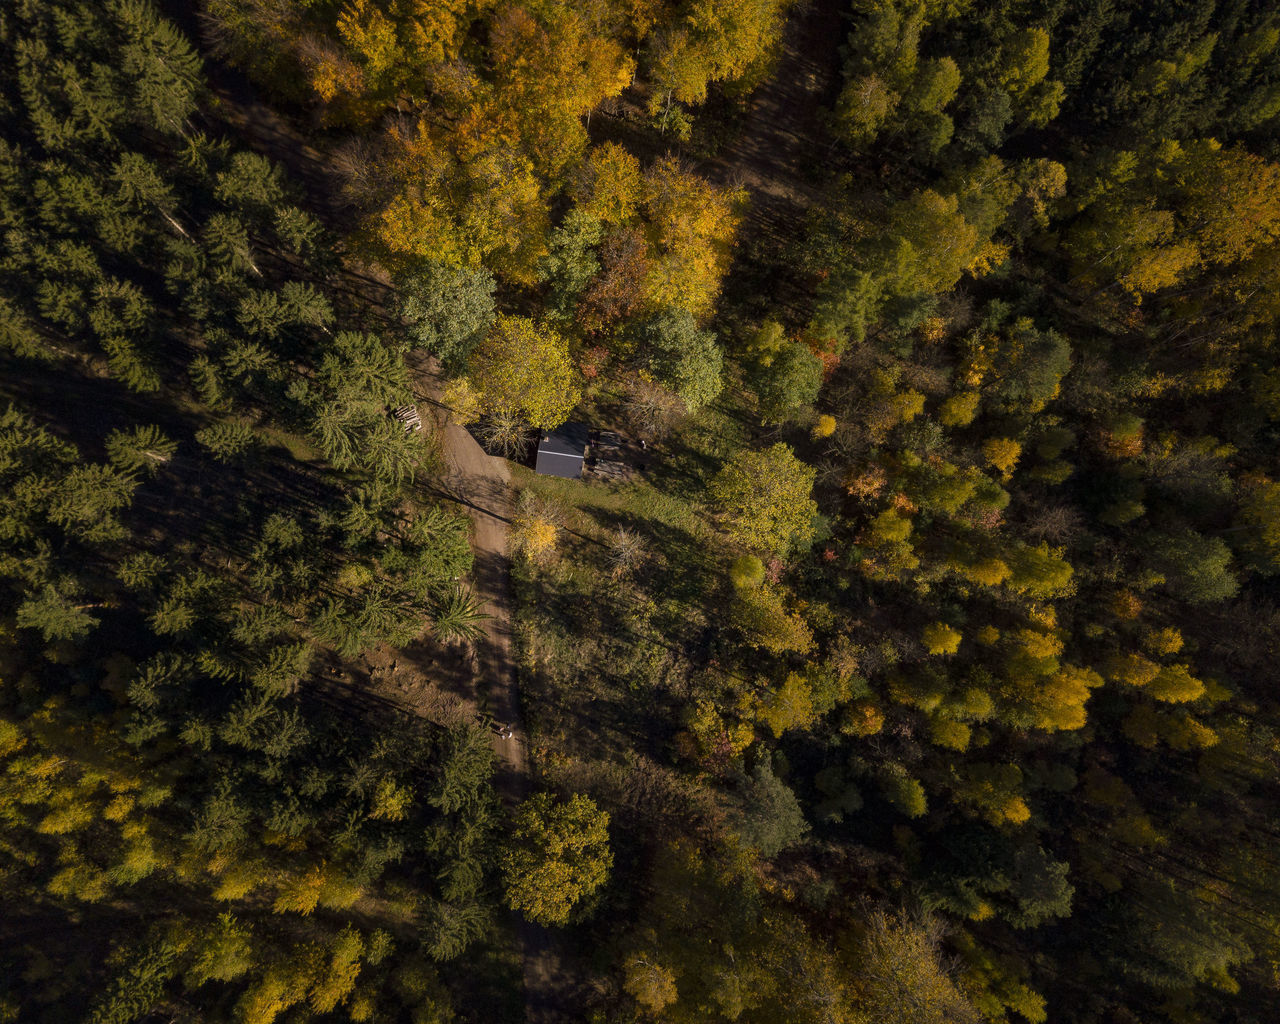 tree, plant, forest, beauty in nature, nature, land, tranquility, scenics - nature, high angle view, growth, no people, green color, tranquil scene, aerial view, landscape, autumn, non-urban scene, day, transportation, foliage, outdoors, woodland, pine woodland, coniferous tree